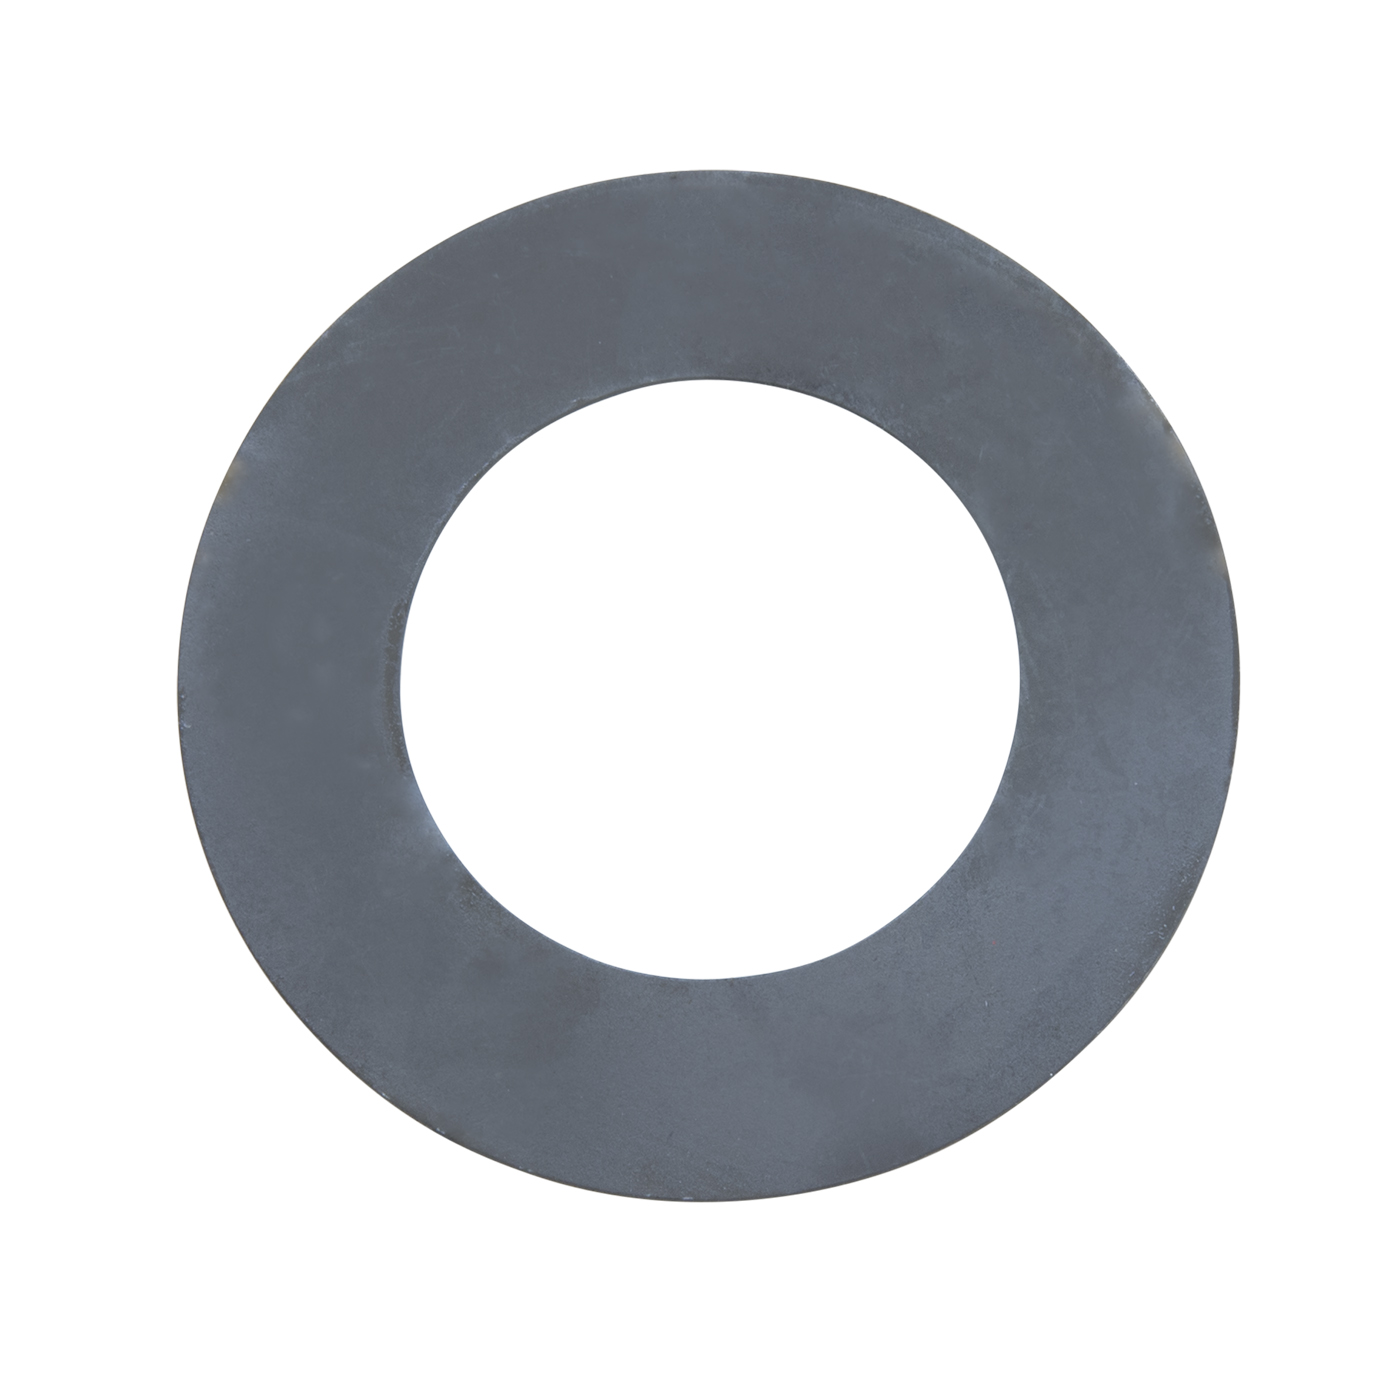 YSPTW-010 - Replacement side gear thrust washer for Dana 44, 19 spline